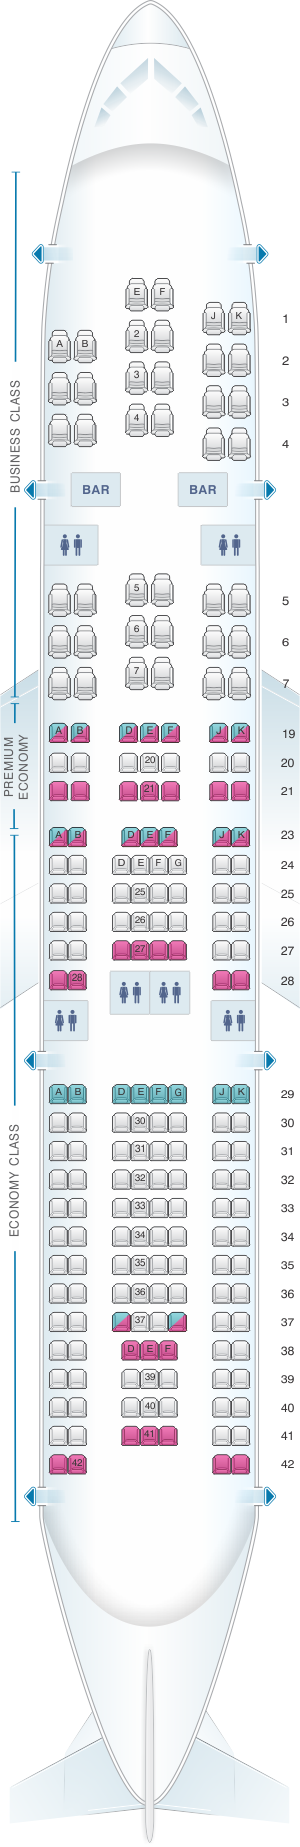 Seat map for Air France Airbus A330 200 Long-Haul International 208PAX